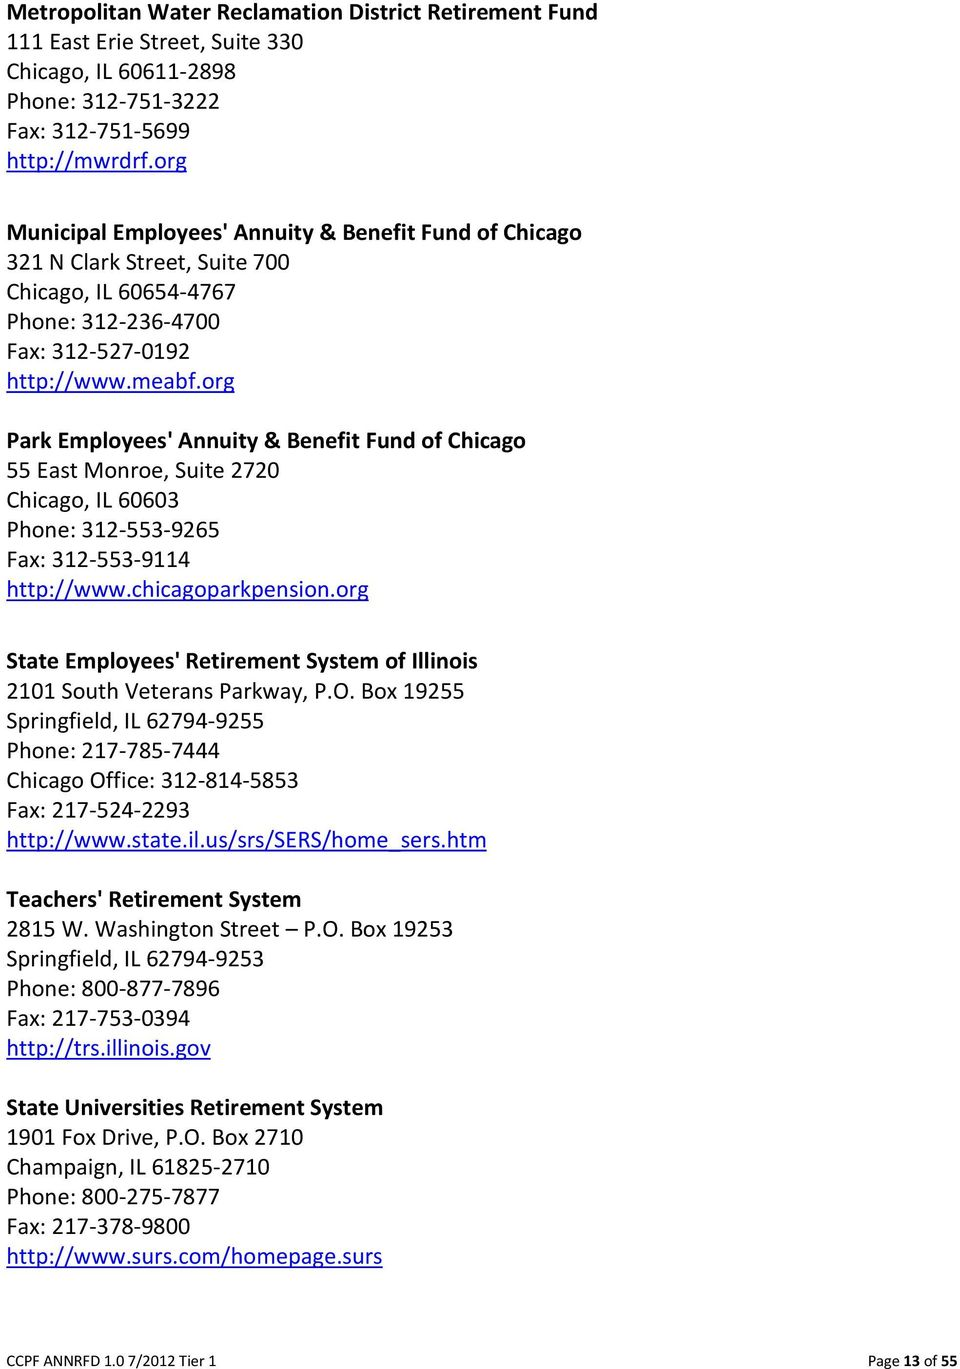 org Park Employees' Annuity & Benefit Fund of Chicago 55 East Monroe, Suite 2720 Chicago, IL 60603 Phone: 312-553-9265 Fax: 312-553-9114 http://www.chicagoparkpension.